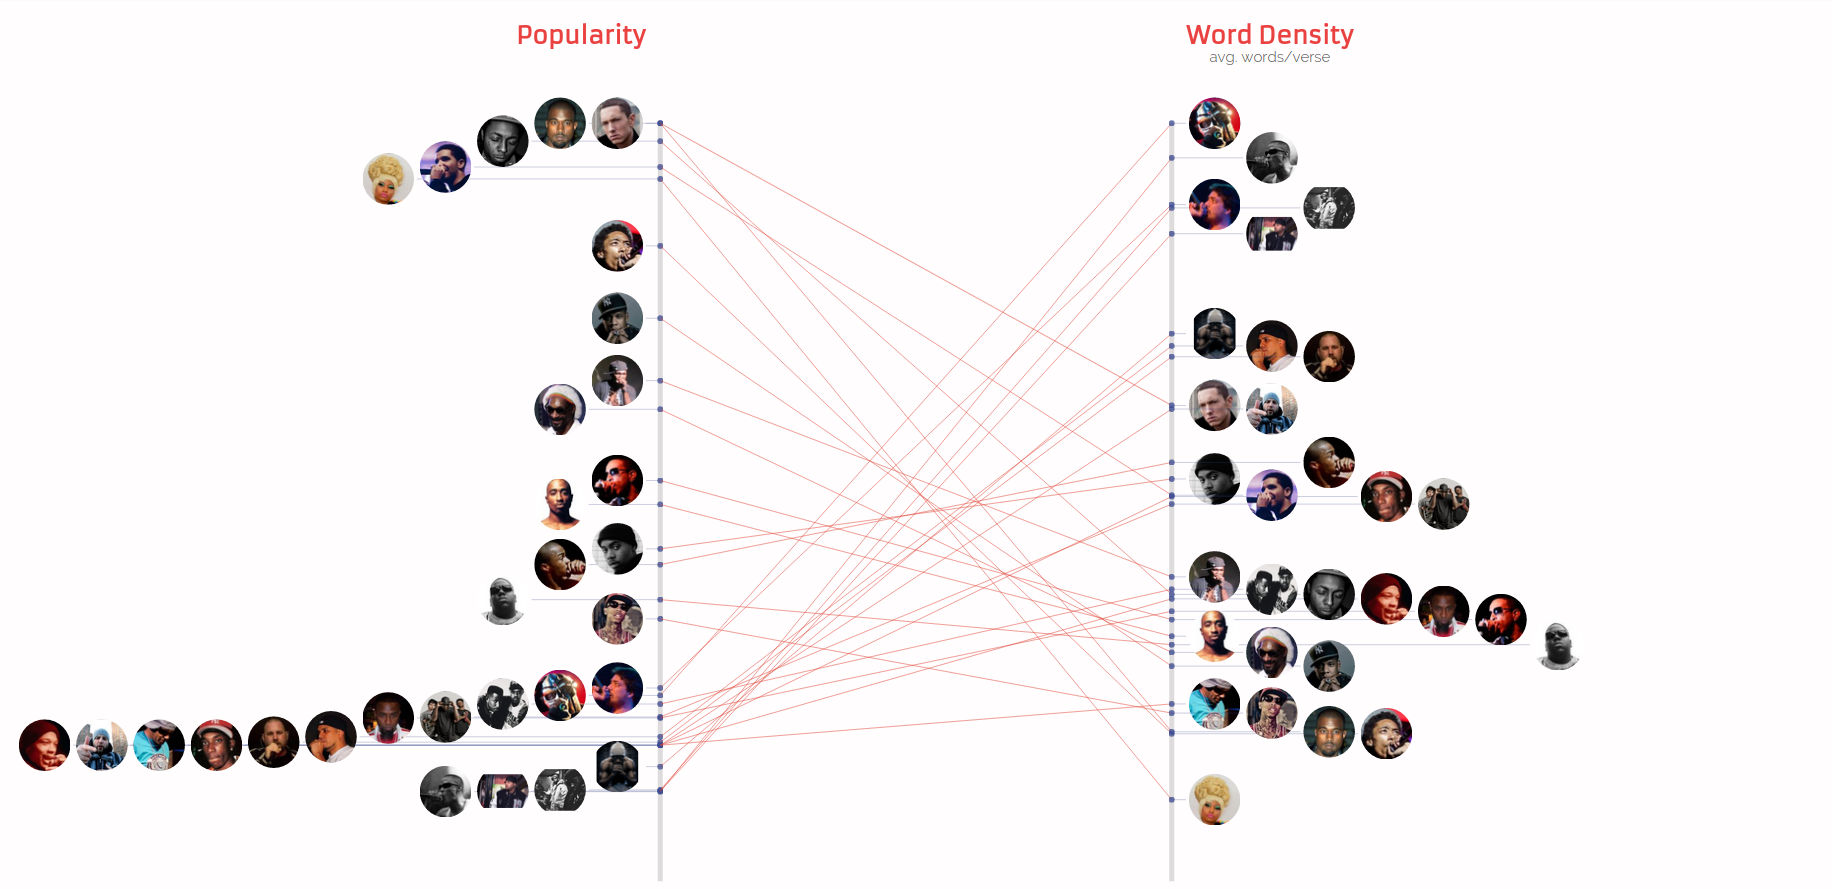 Popularity vs Word Density